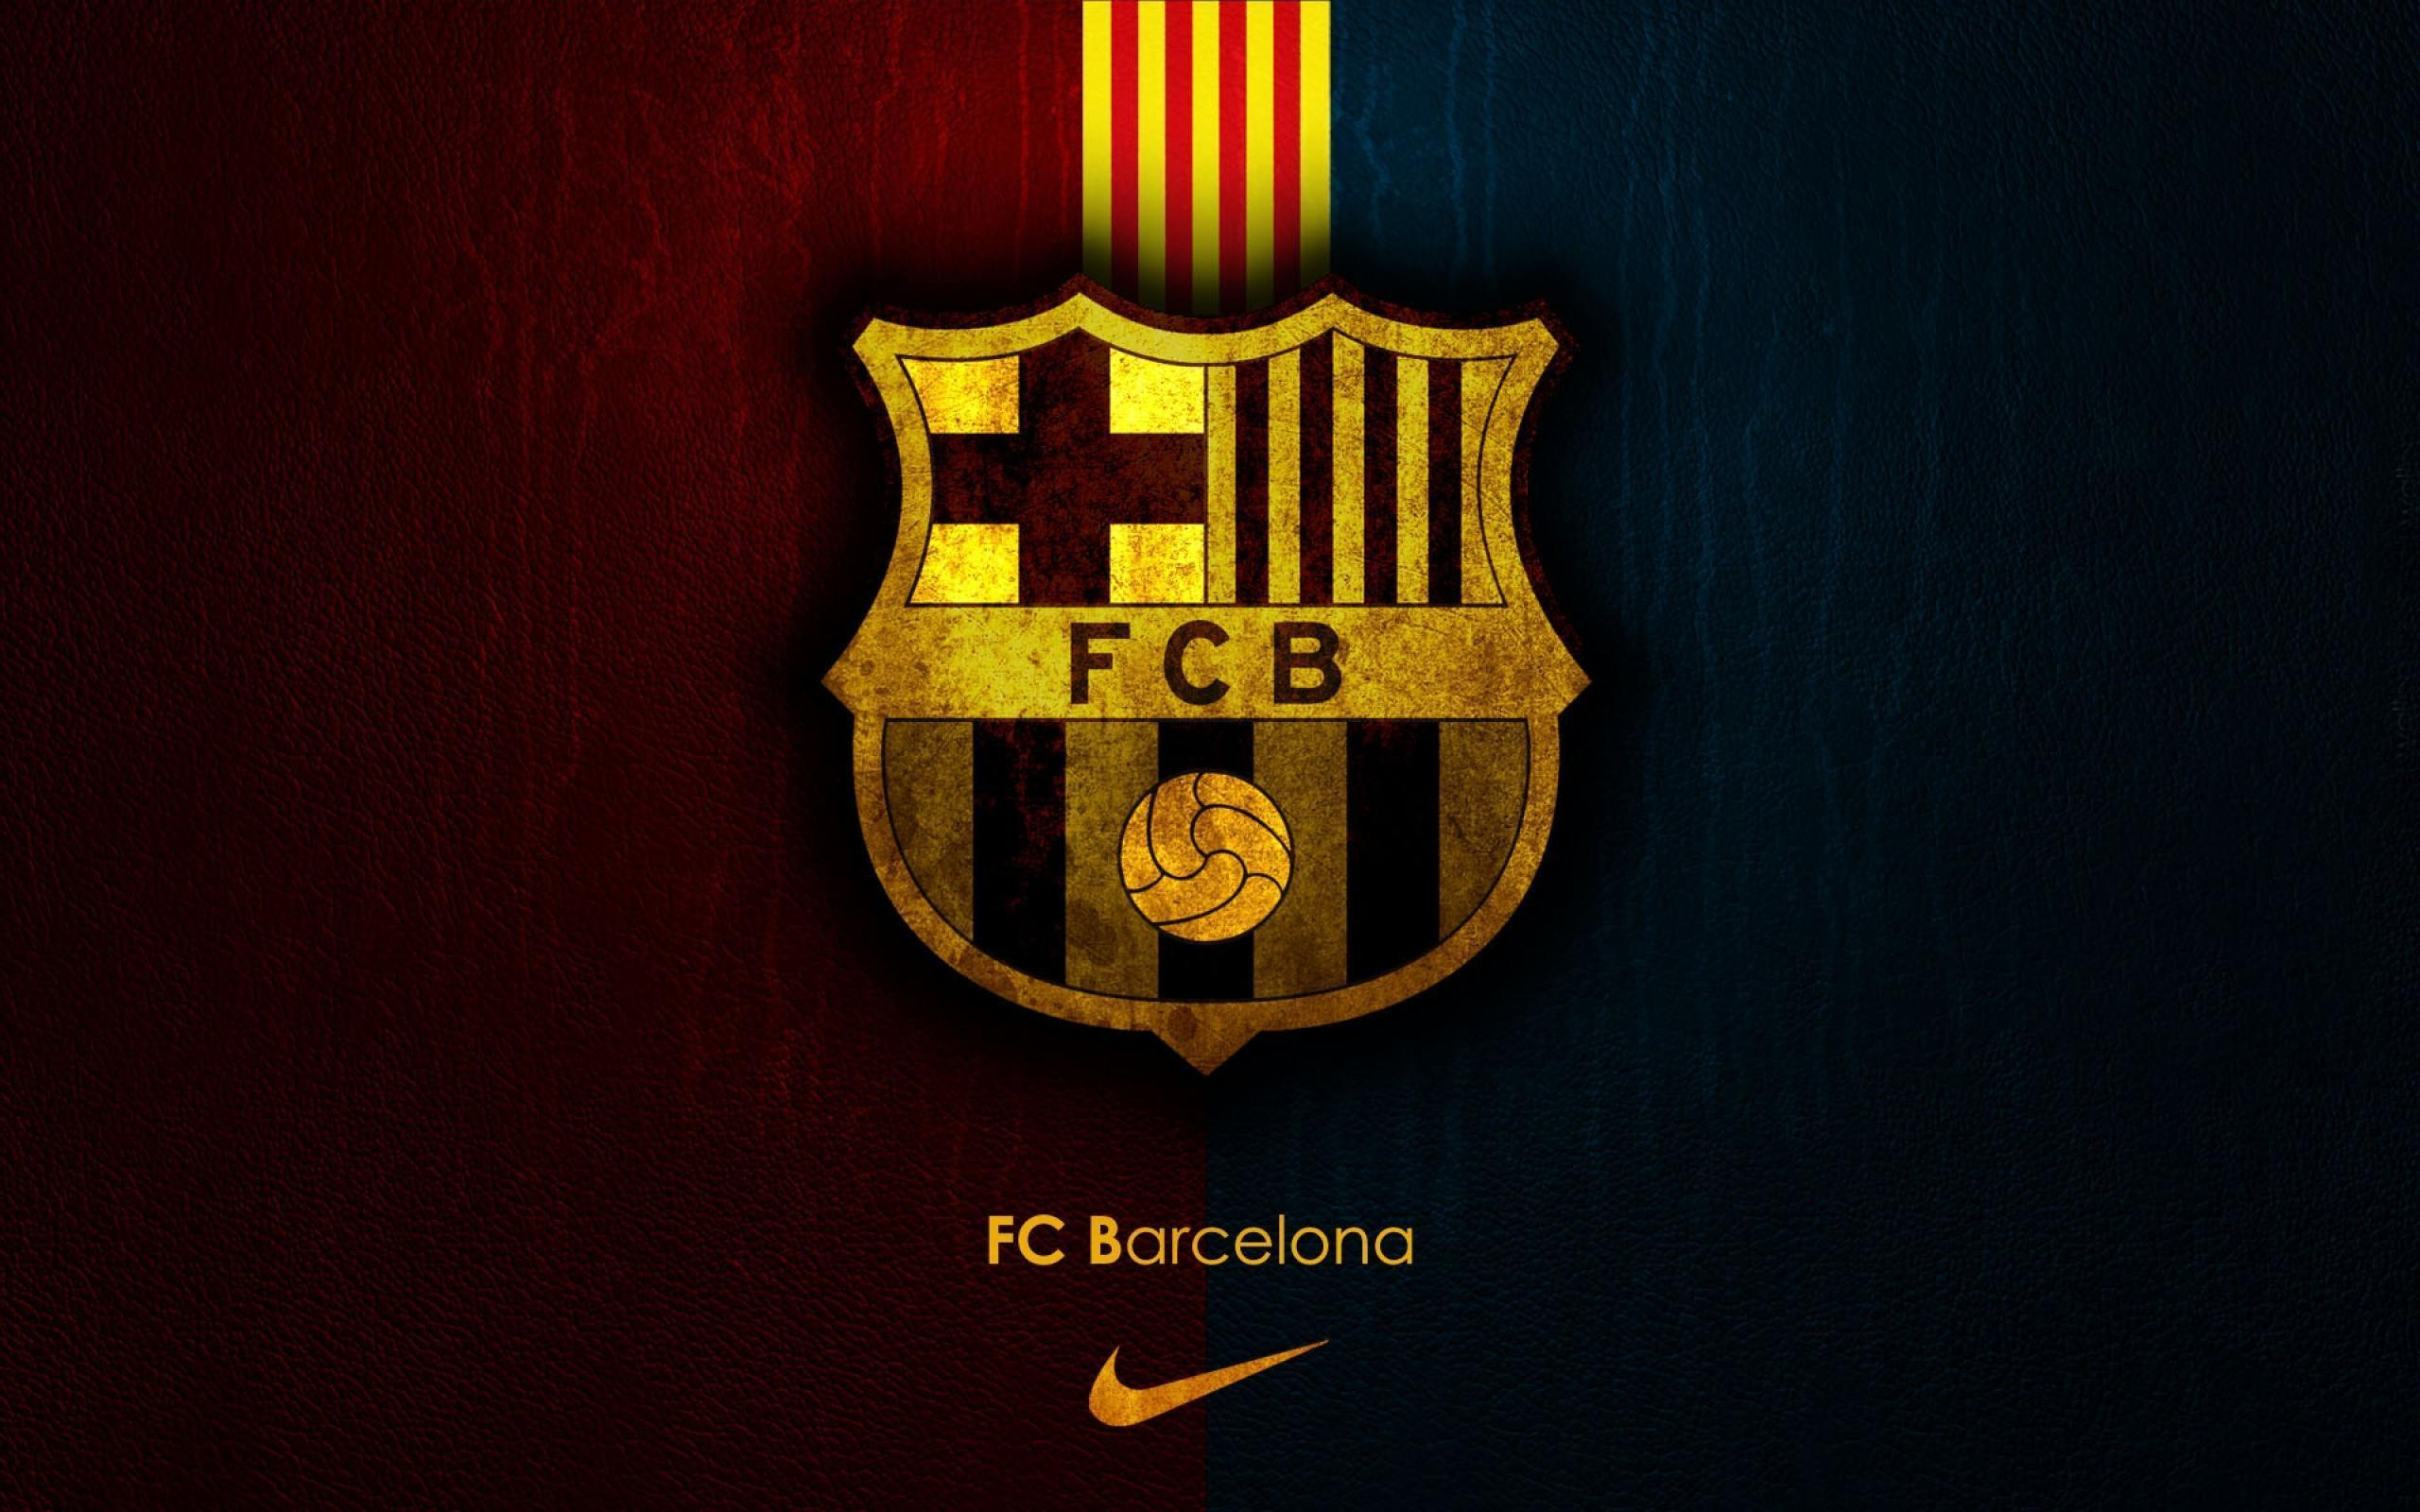 fc barcelona wallpapers wallpaper cave fc barcelona wallpapers wallpaper cave